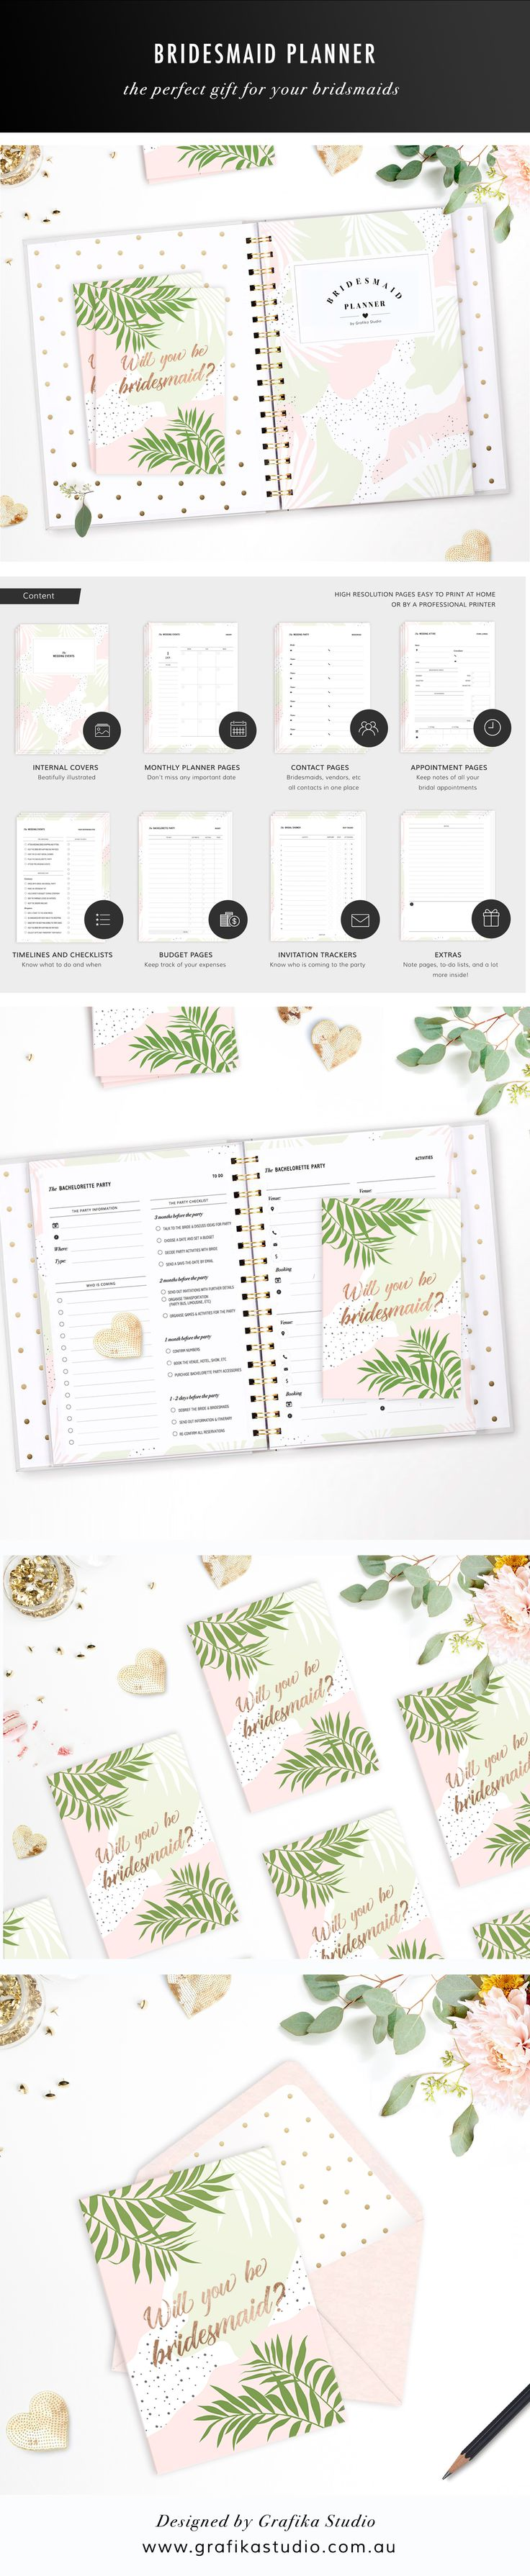 Bridesmaid Planner • Maid of Honour Planner • Maid of Honor Planner • Printable Planner • Bridesmaid Gift • Maid of Honour Gift • Maid of Honor Gift • Bridal Planner • Wedding Planner • Wedding organiser • Wedding organiser • Bridesmaid proposal card • Maid of Honour proposal card • Maid of Honor proposal card